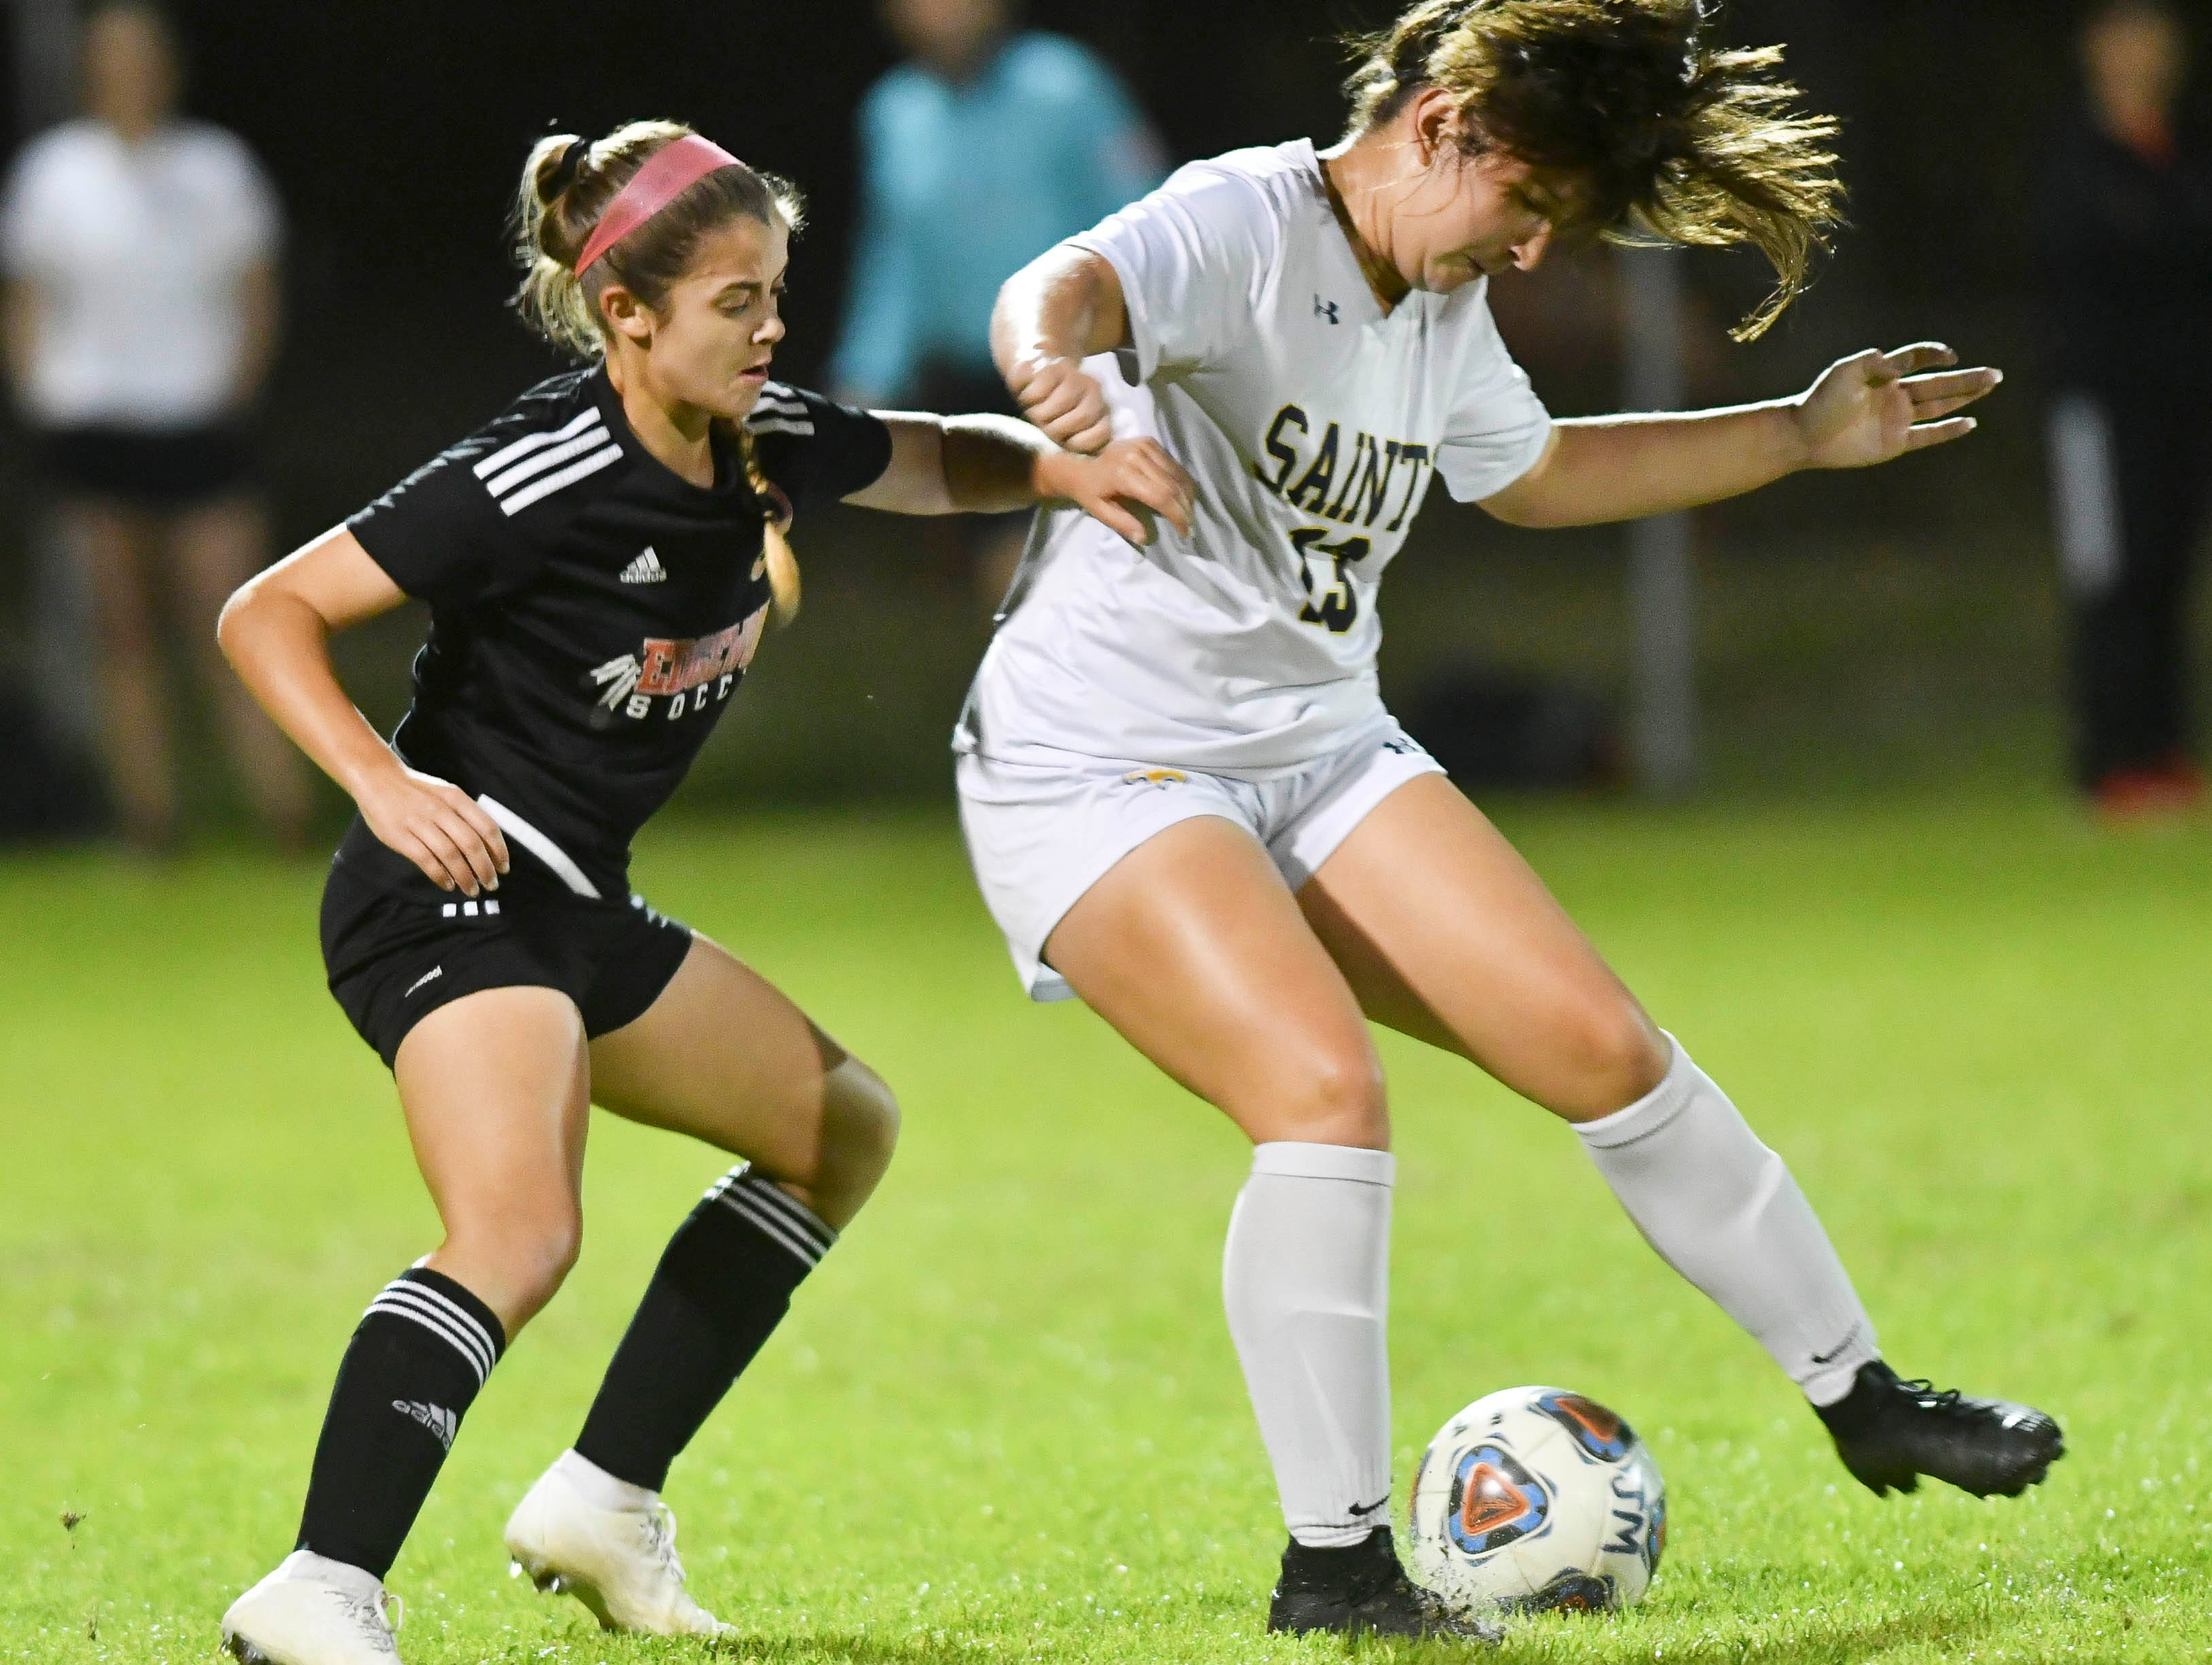 Romie Llewellyn of Trinity Prep keeps the ball away from Julia Passarelli of Edgewood during Friday's Class 2A regional semifinal at Edgewood Jr/Sr High.